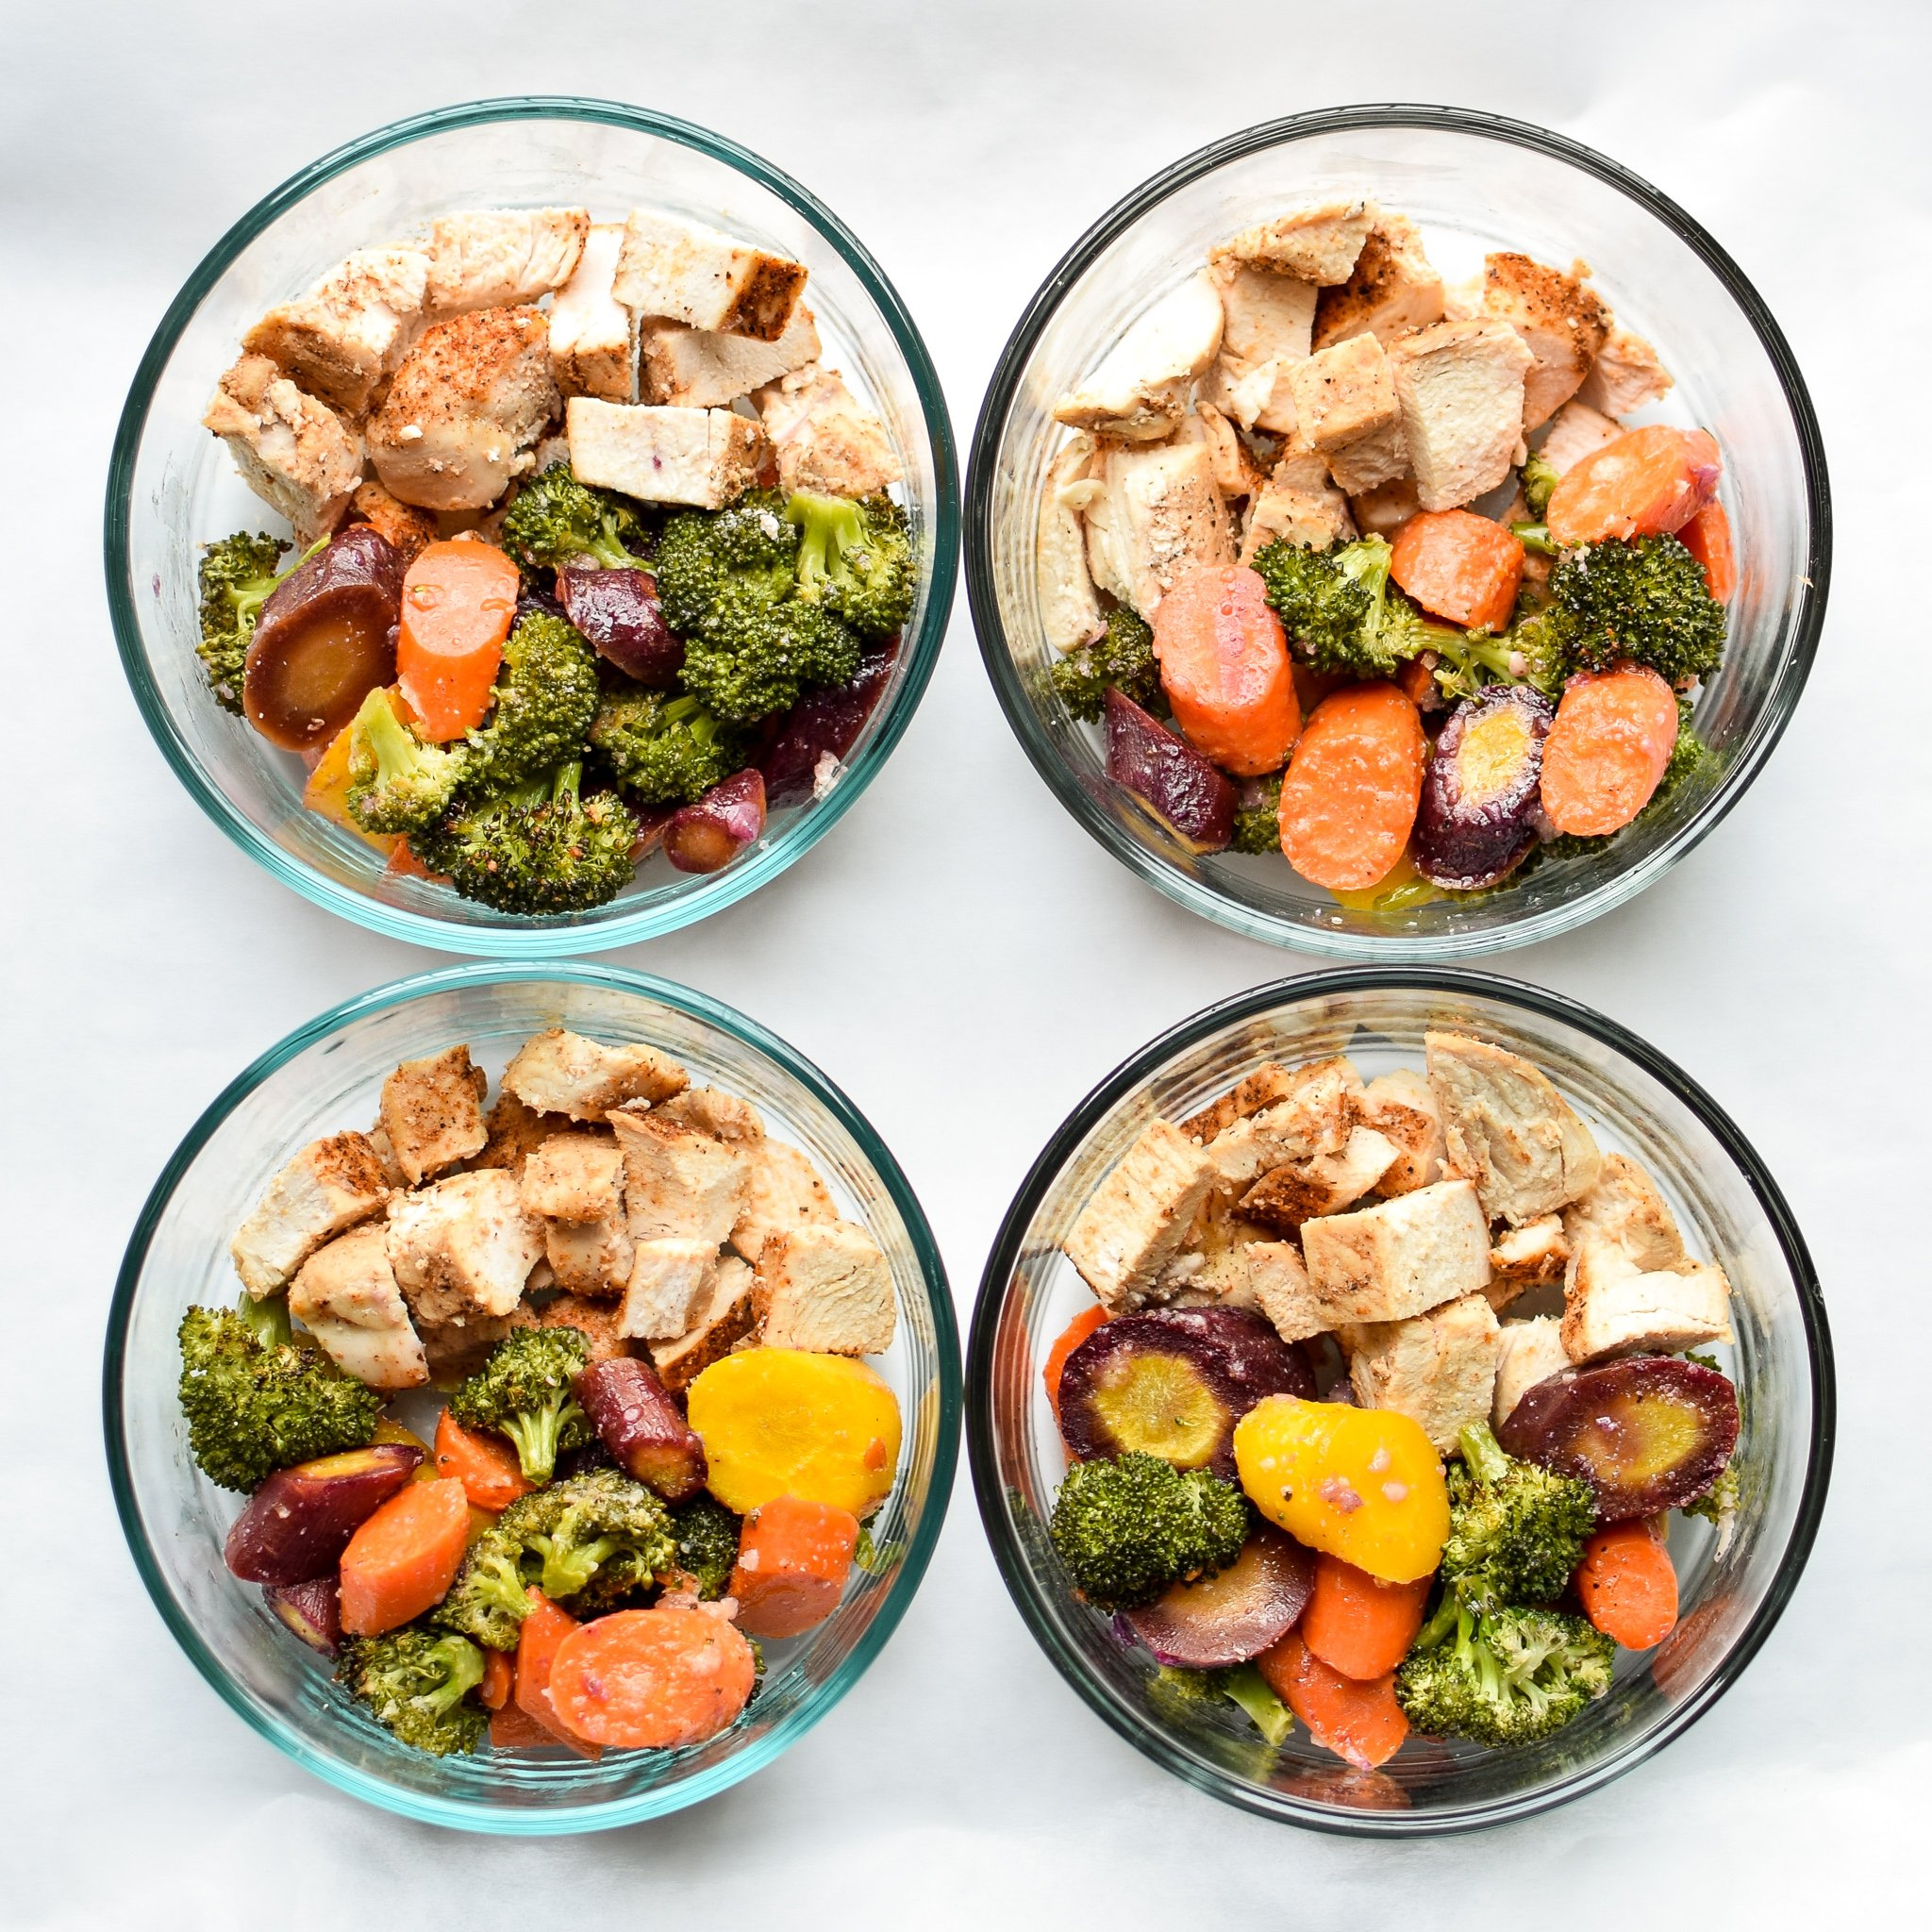 Sunday Meal Prep for January 8th, 2017 - Sunday Meal Prep Steps, shopping list, macro counts and more! - ProjectMealPlan.com